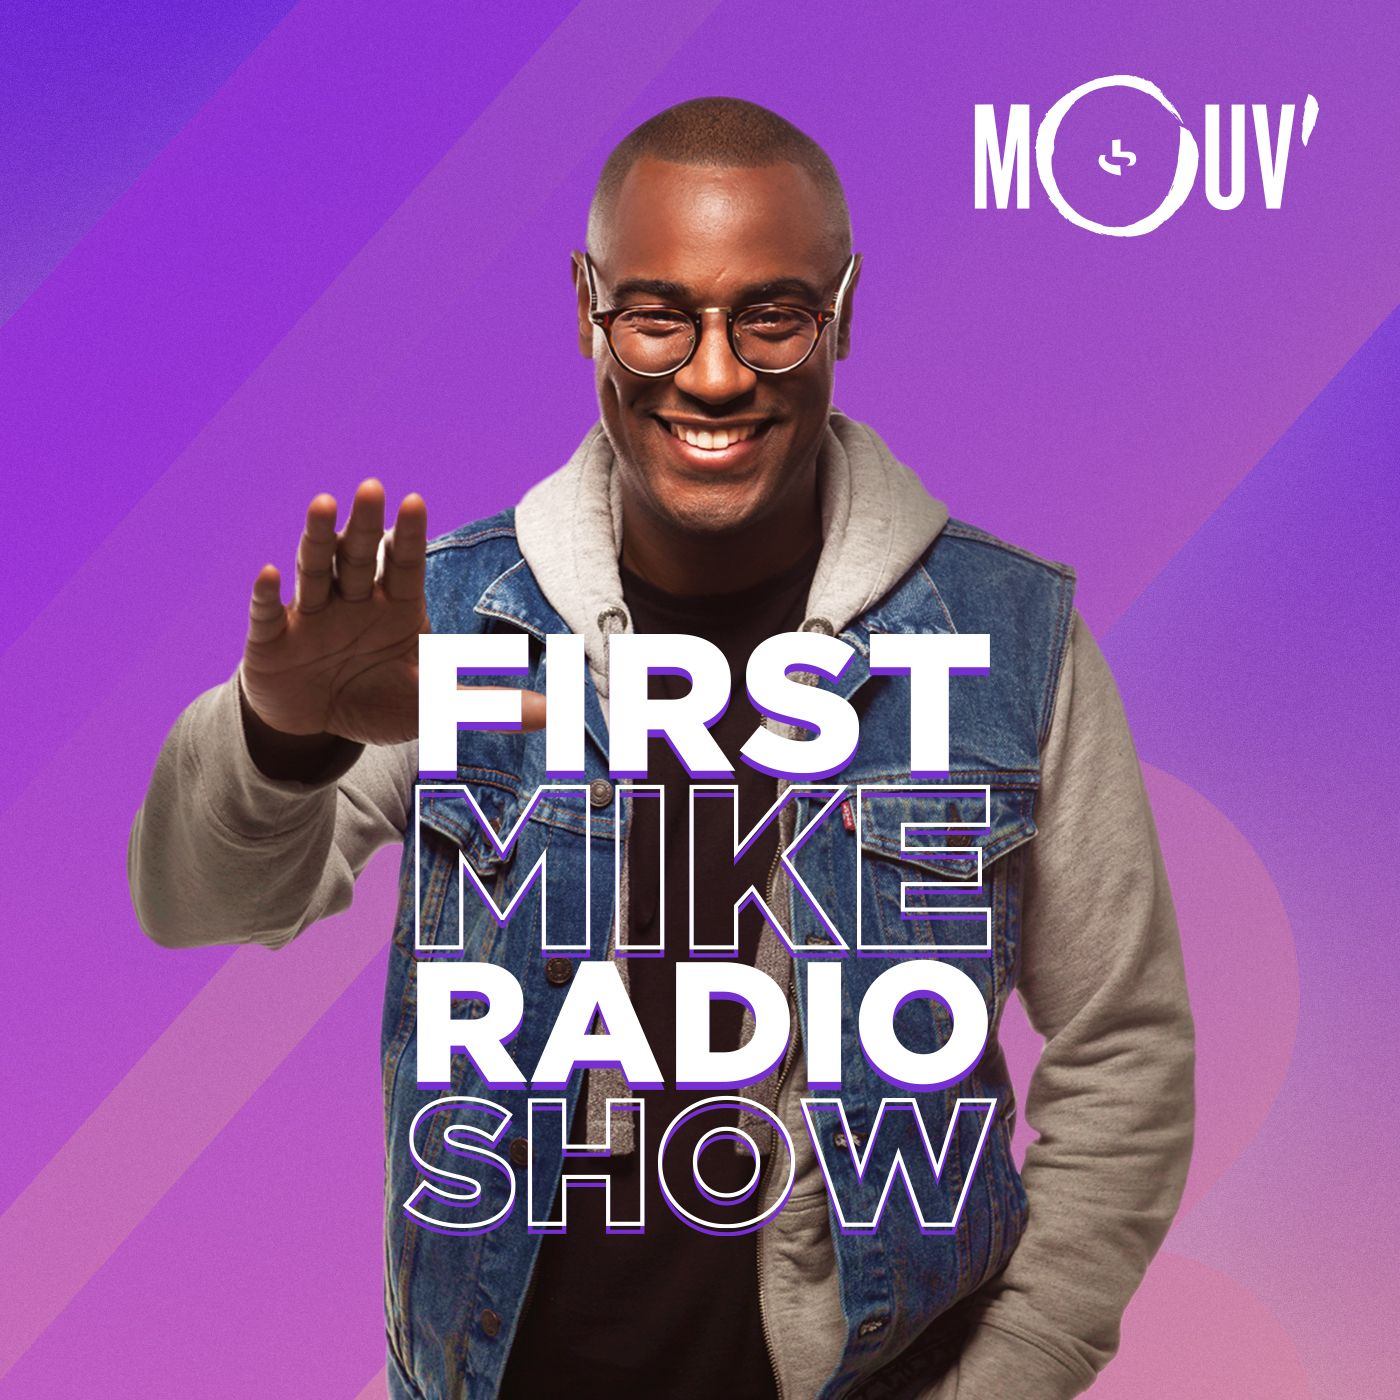 Image 1: First Mike Radio Show